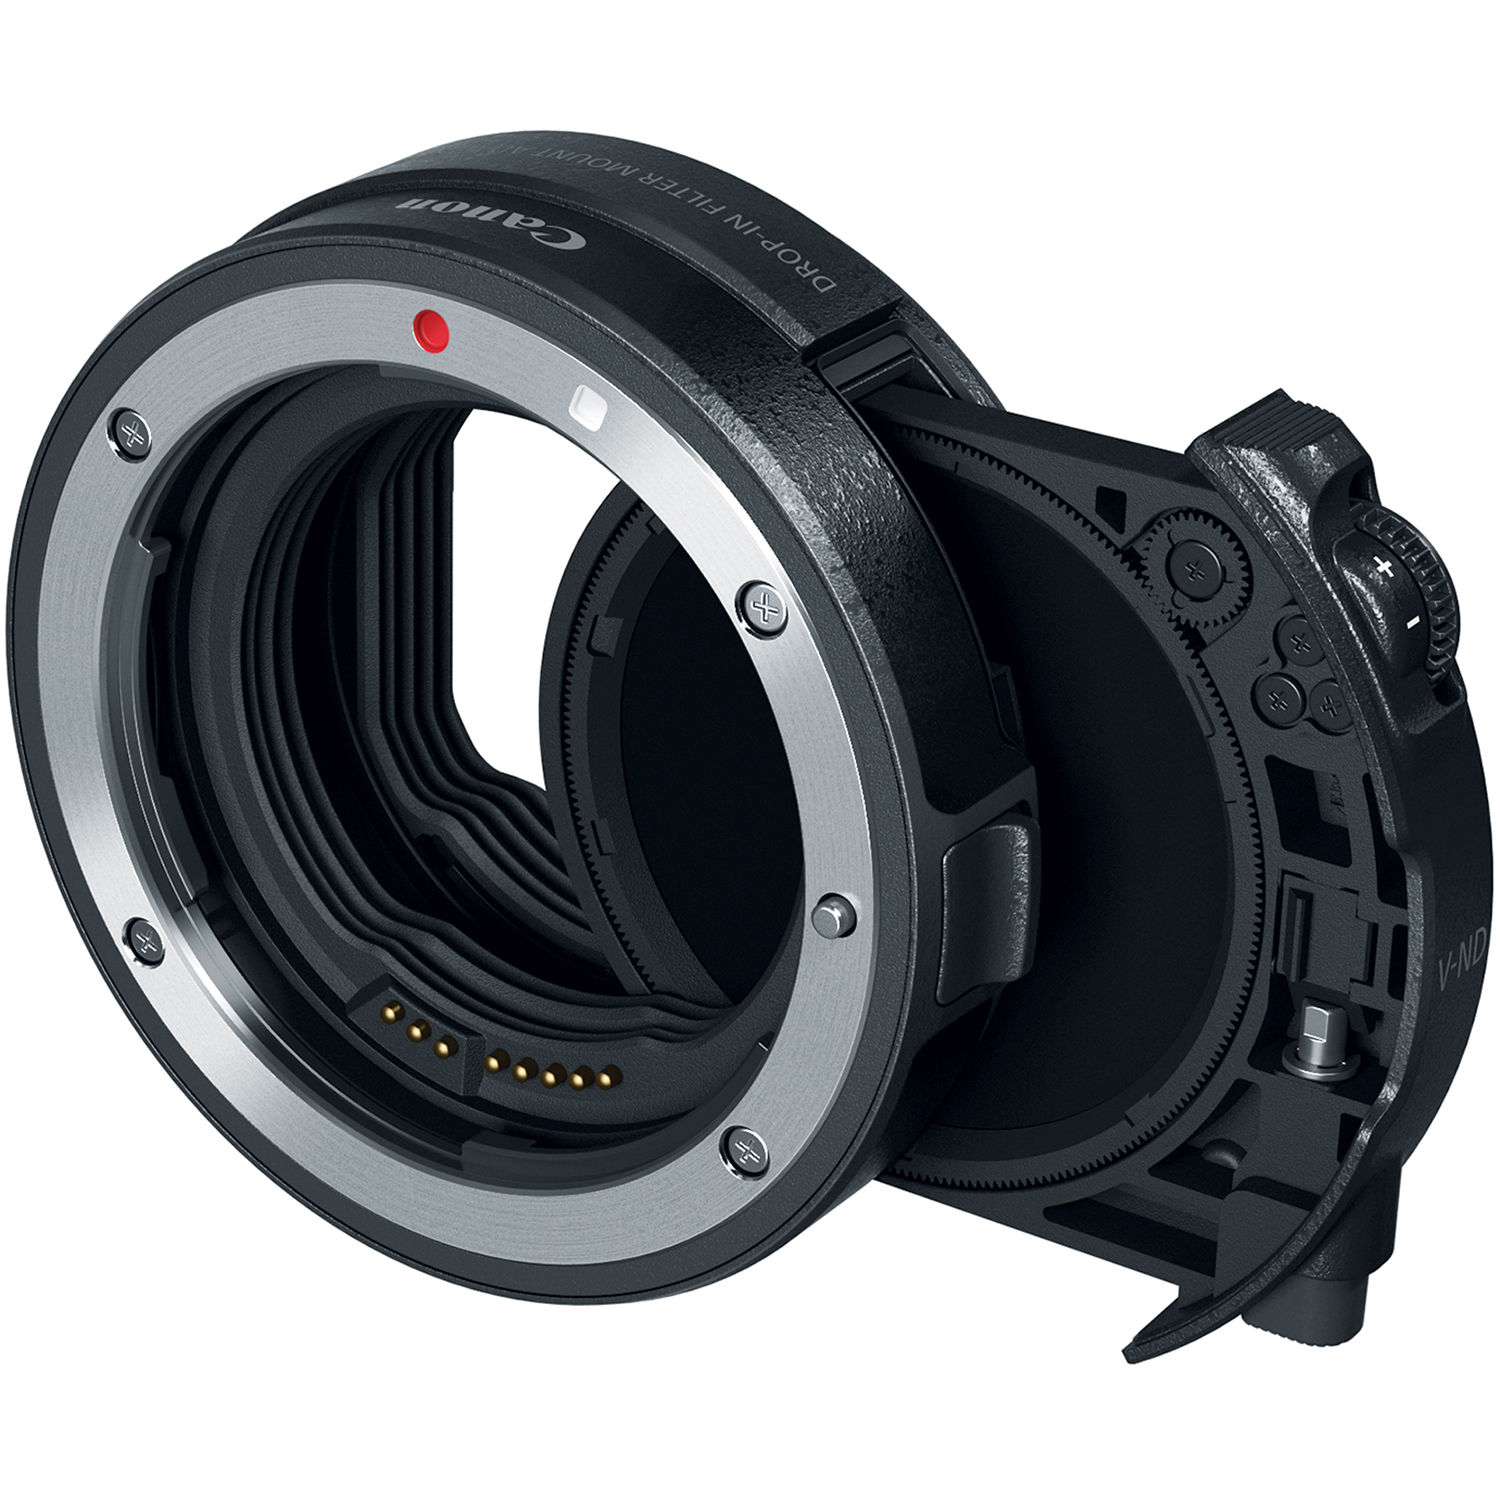 Lens Adapter EF-EOS R Auto-Focus Mount Converter Compatible with Canon EF Lens to EOS R and EOS RP Camera